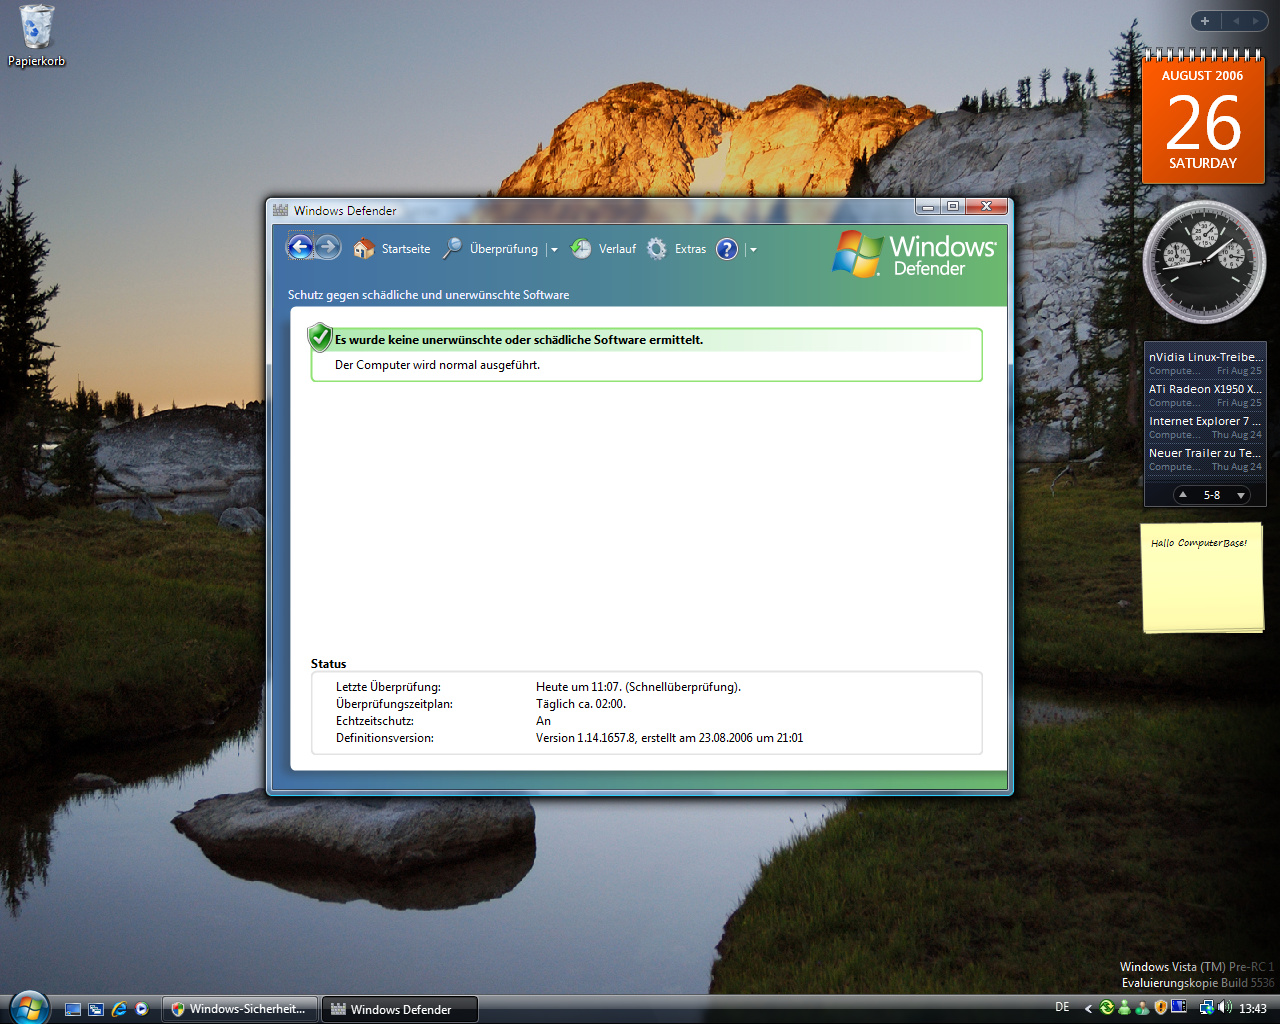 Windows Vista Build 5536 - Defender